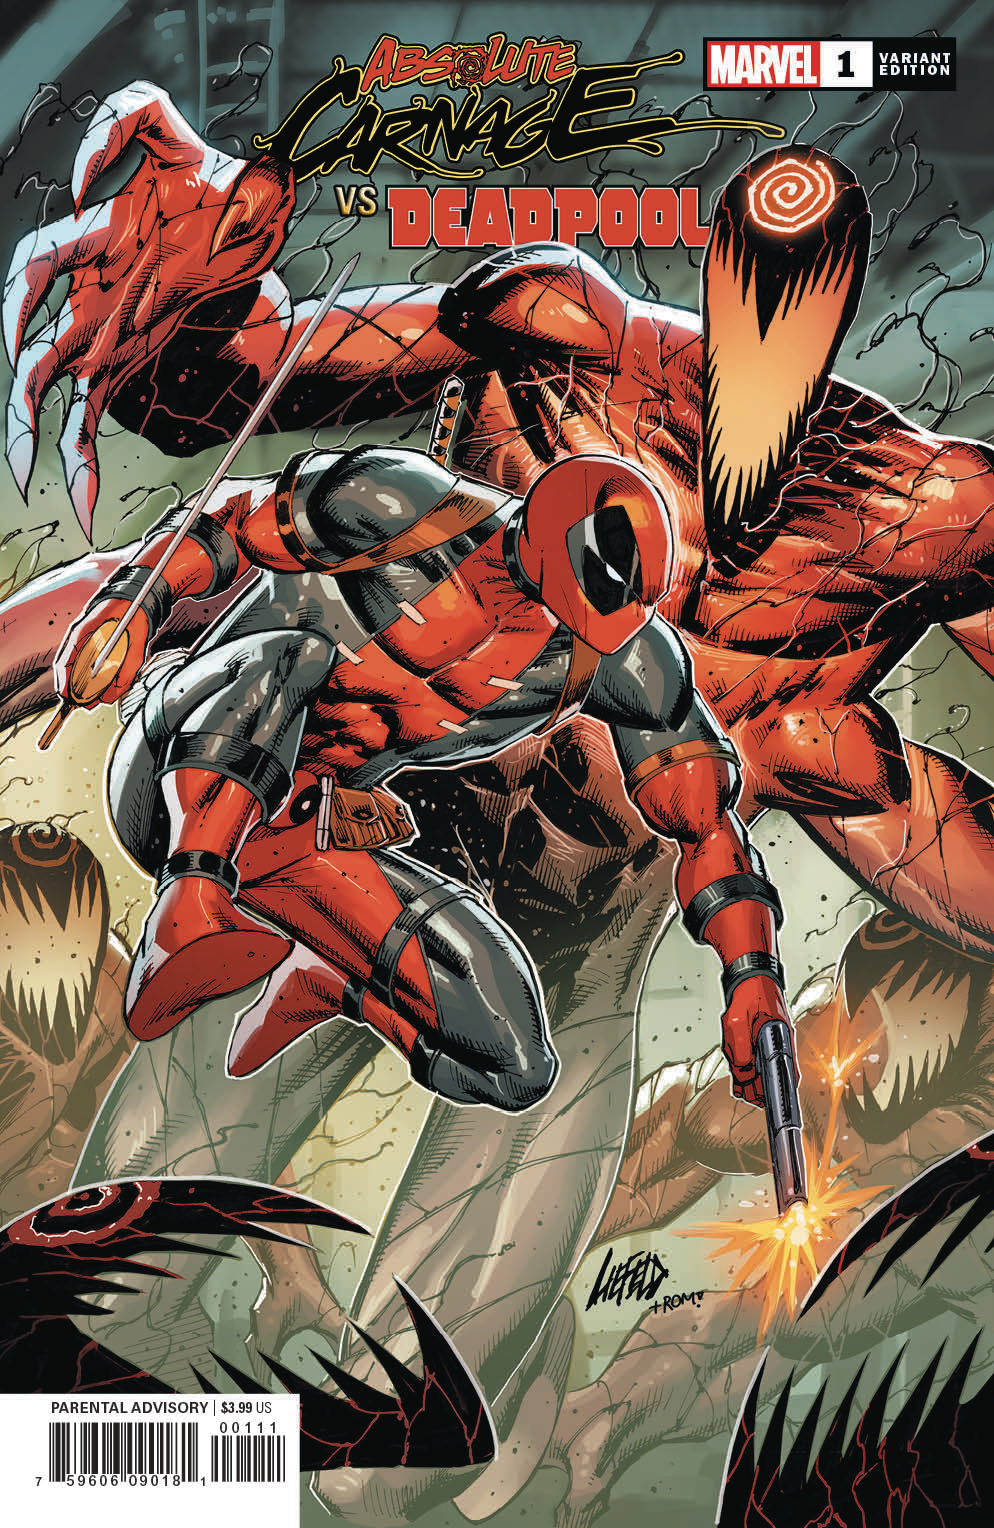 ABSOLUTE CARNAGE VS DEADPOOL #1 (OF 3) CONNECTING VAR AC